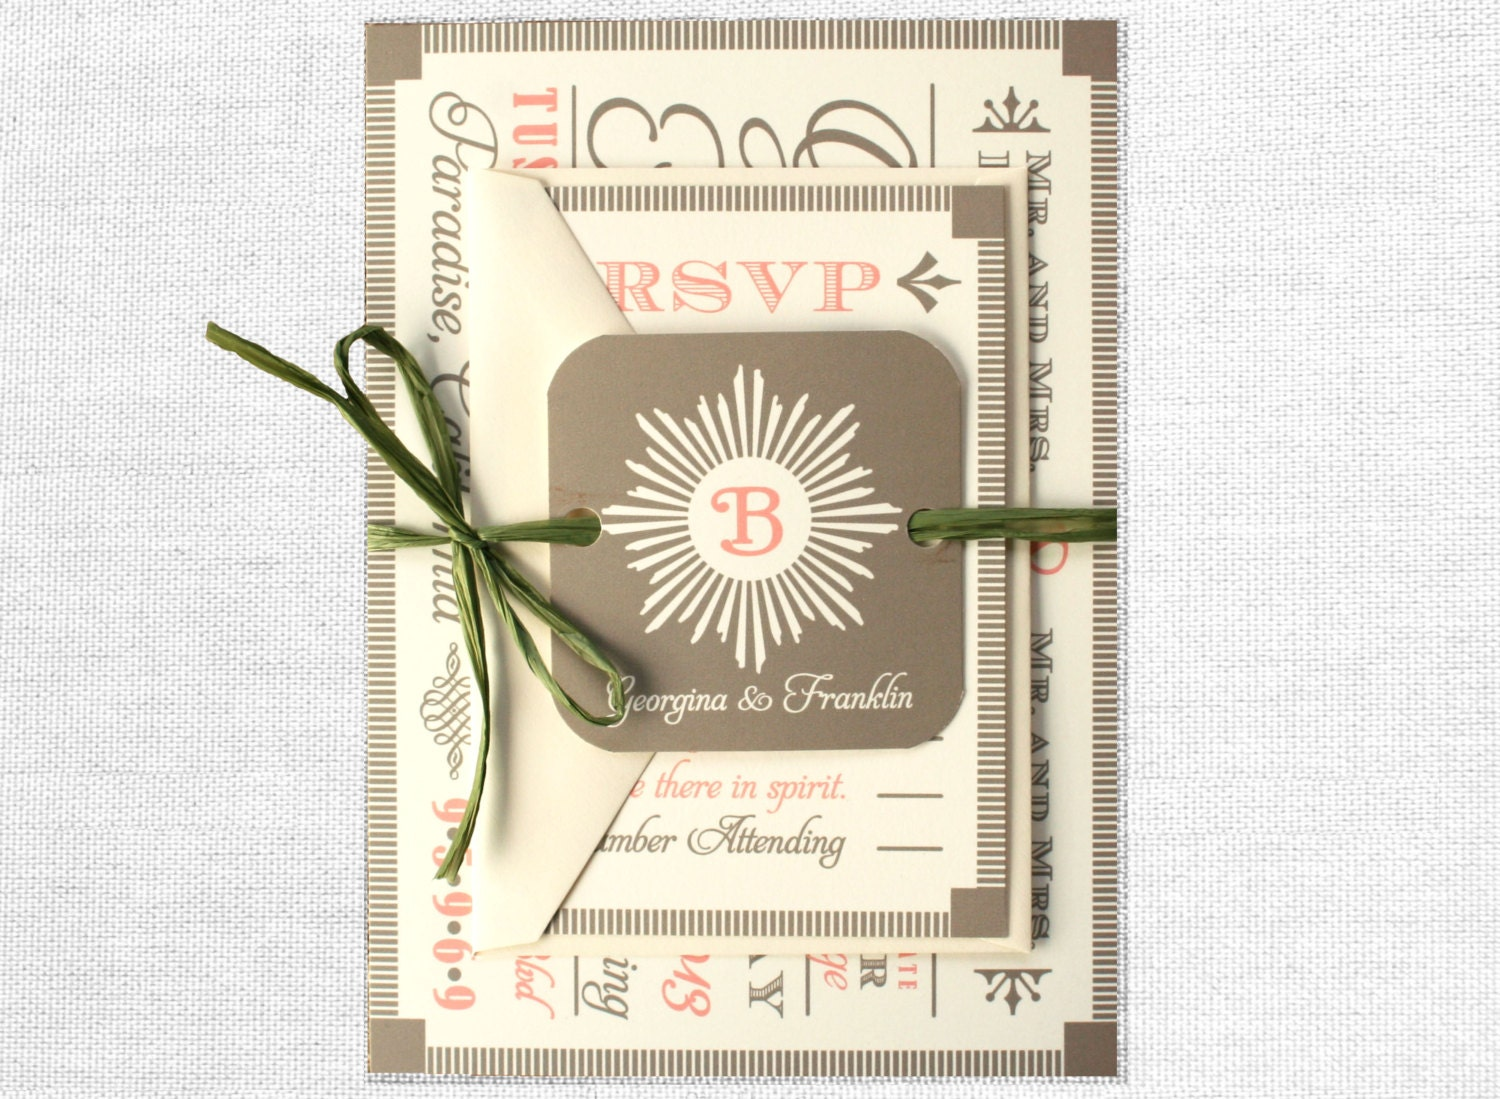 Fonts For Wedding Invitations: Modern Vintage Wood Block Fonts Wedding Invitation With